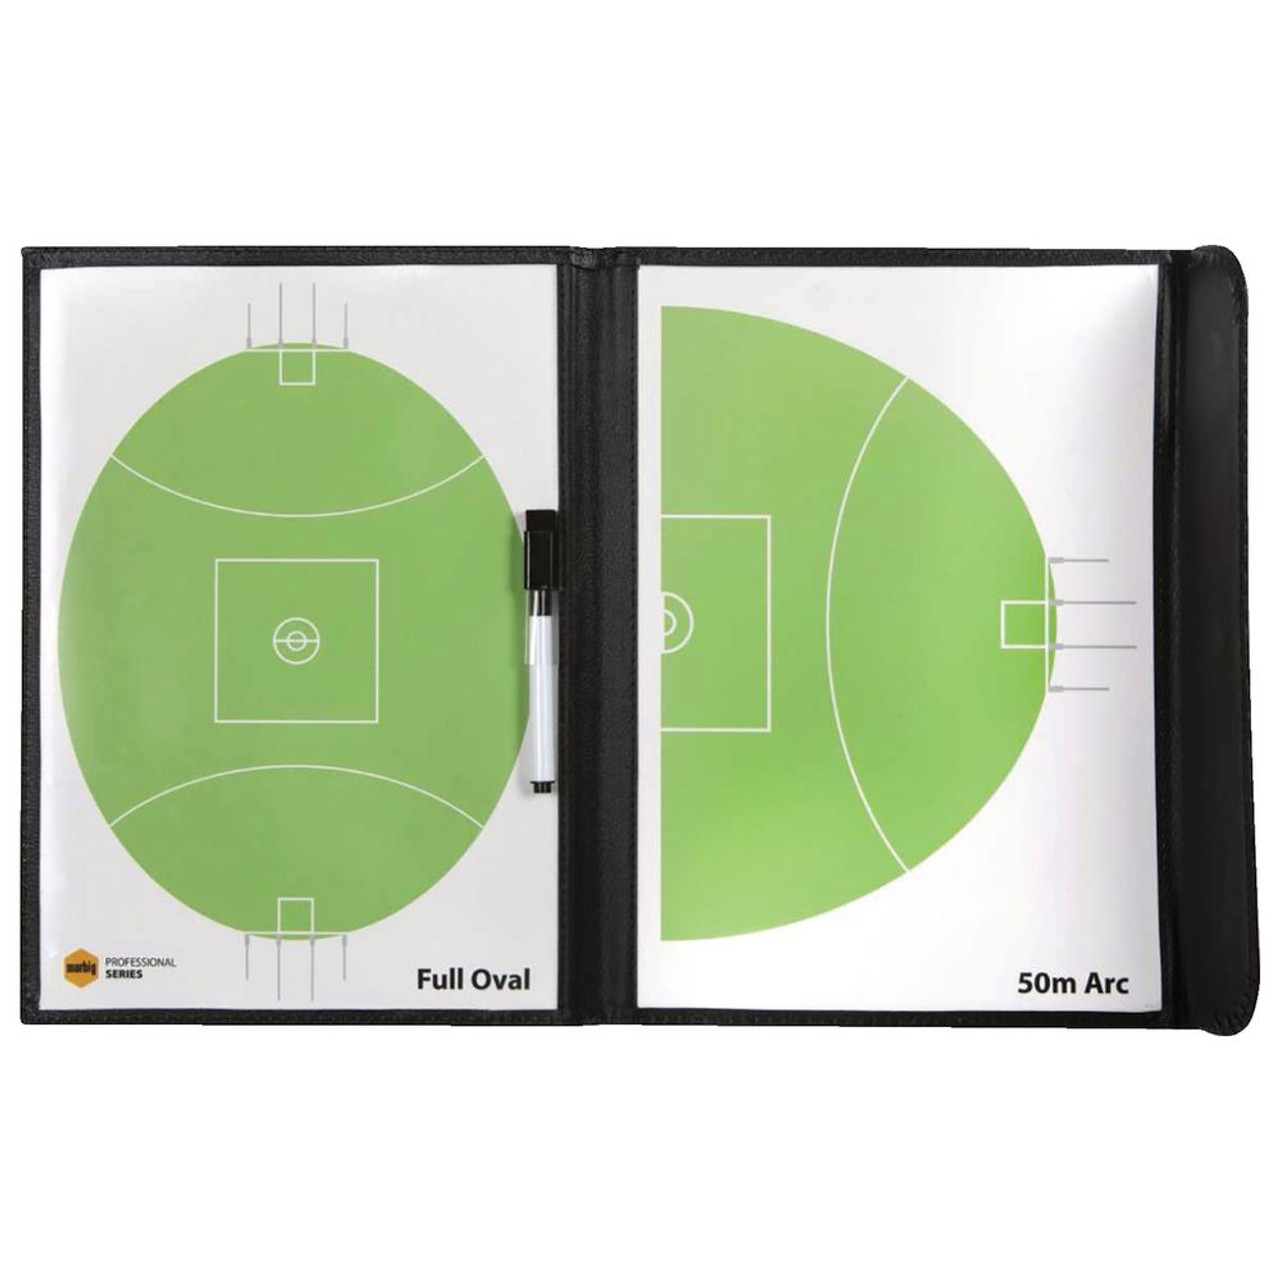 MARBIG© 4500003 SPORTS COACHBOARD AFL - CARTON OF 6